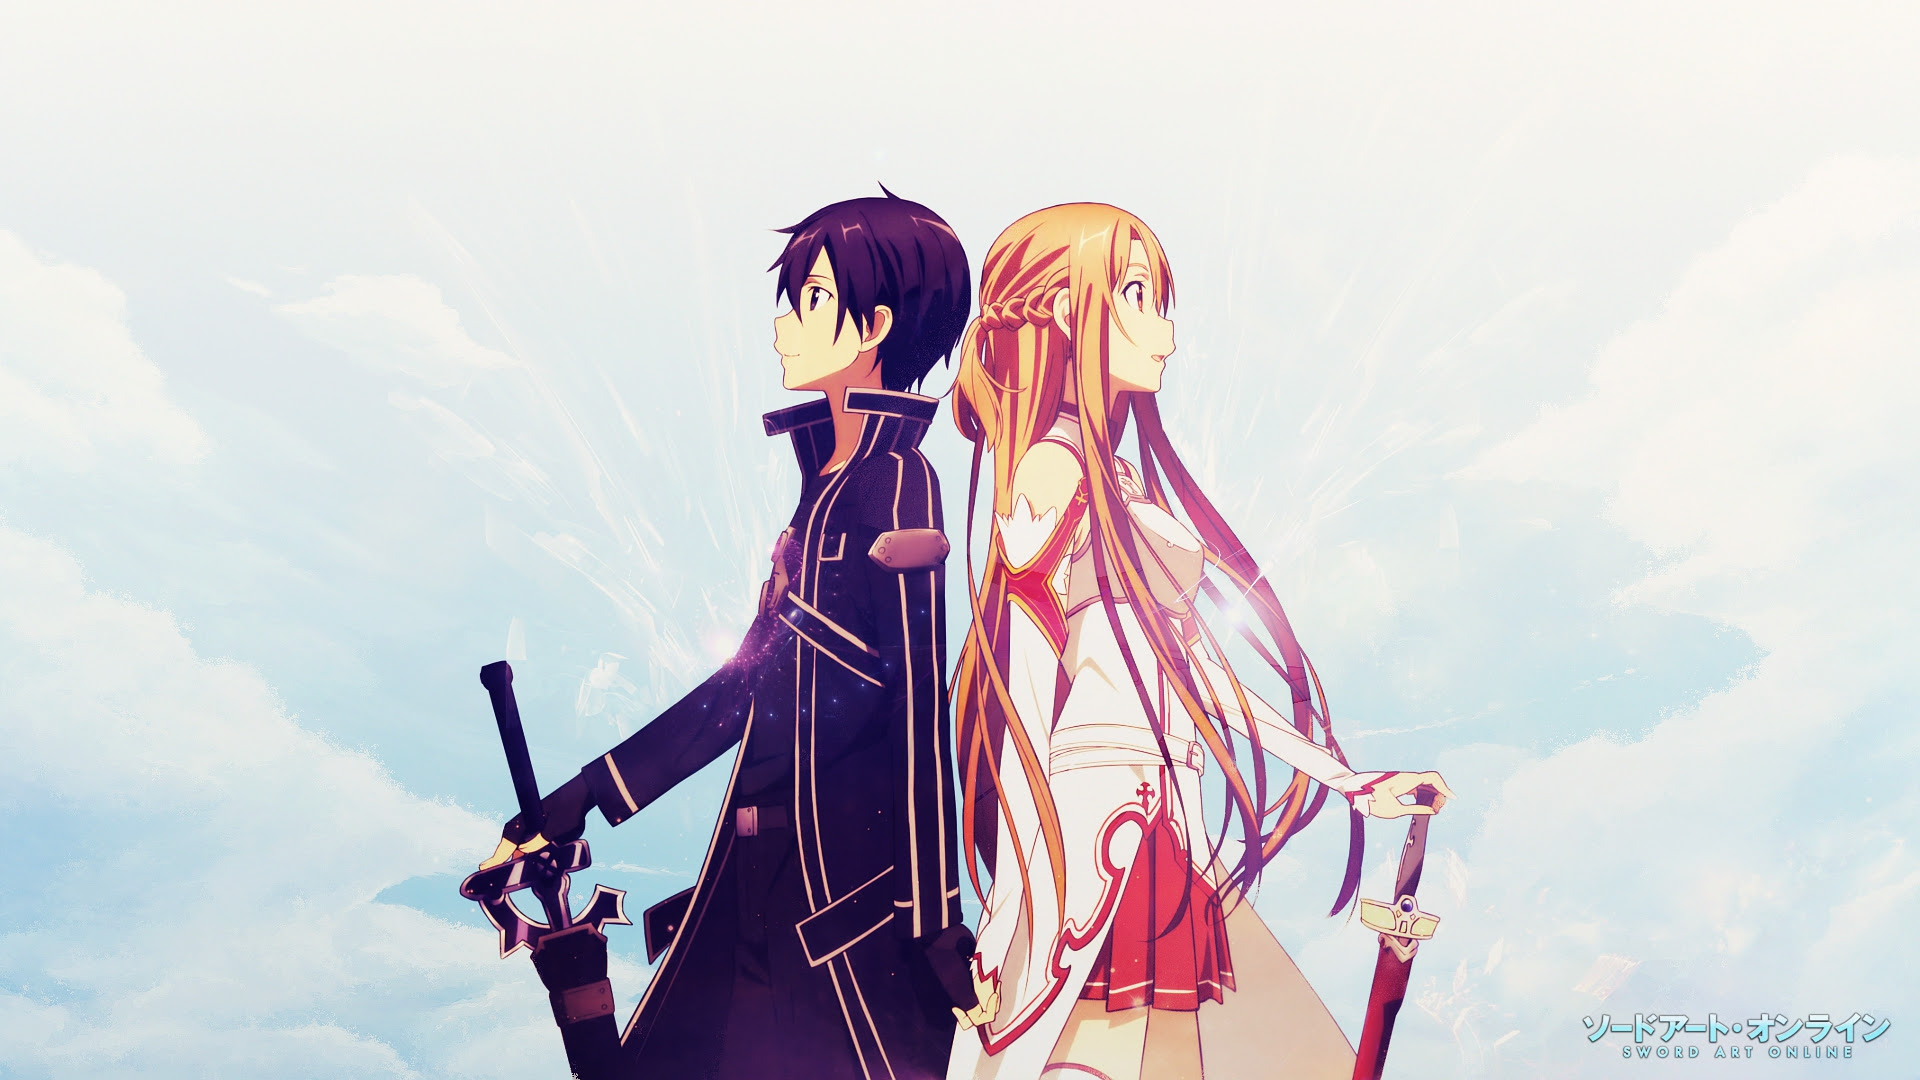 Sword Art Online Hd Wallpapers Backgrounds Wallpaper 1920x1080